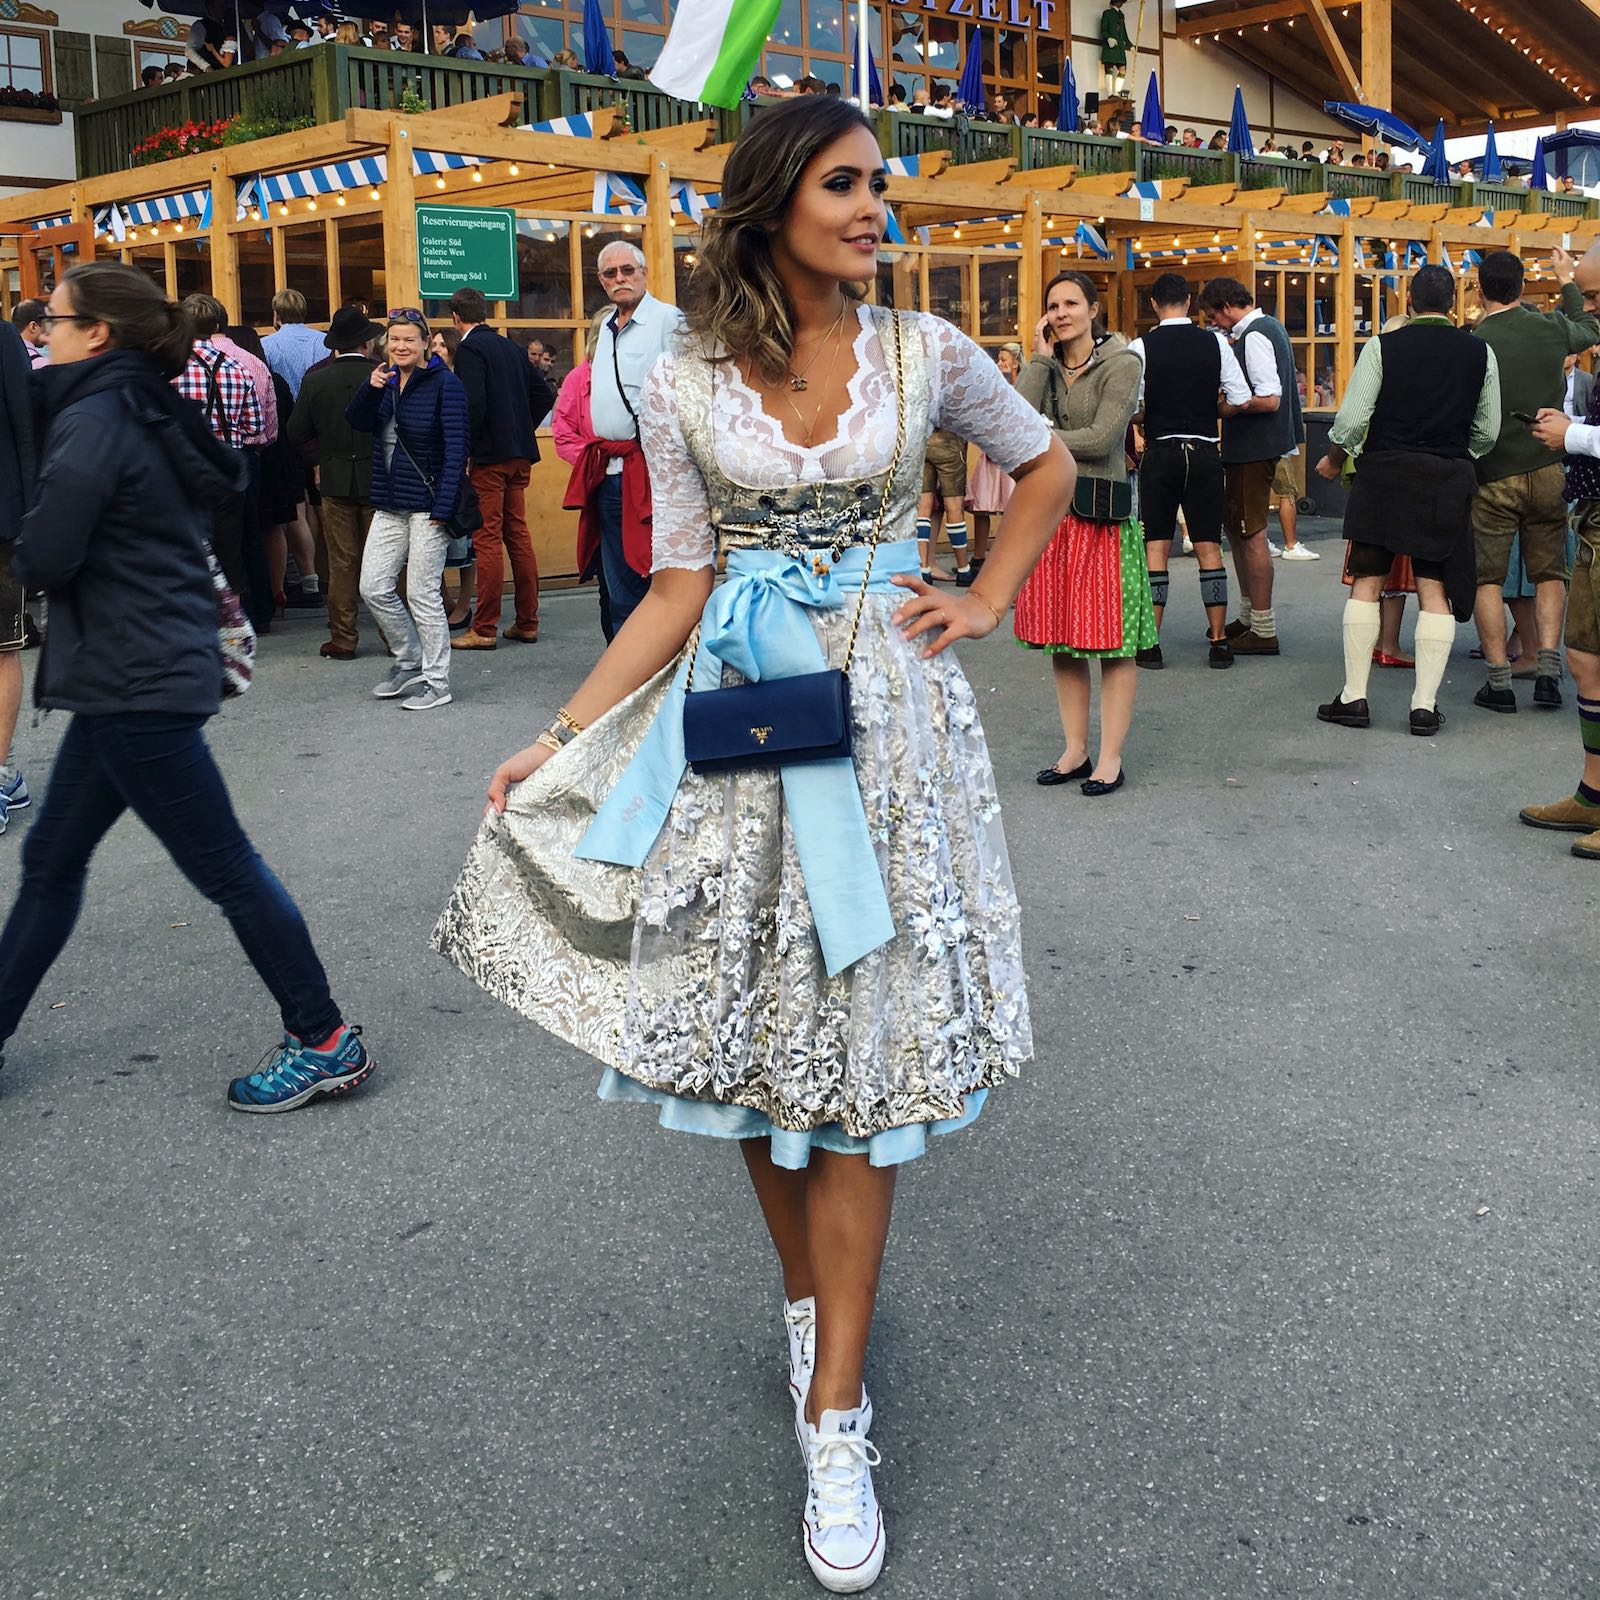 What To Wear And How To Behave At Oktoberfest 2017 In Munich